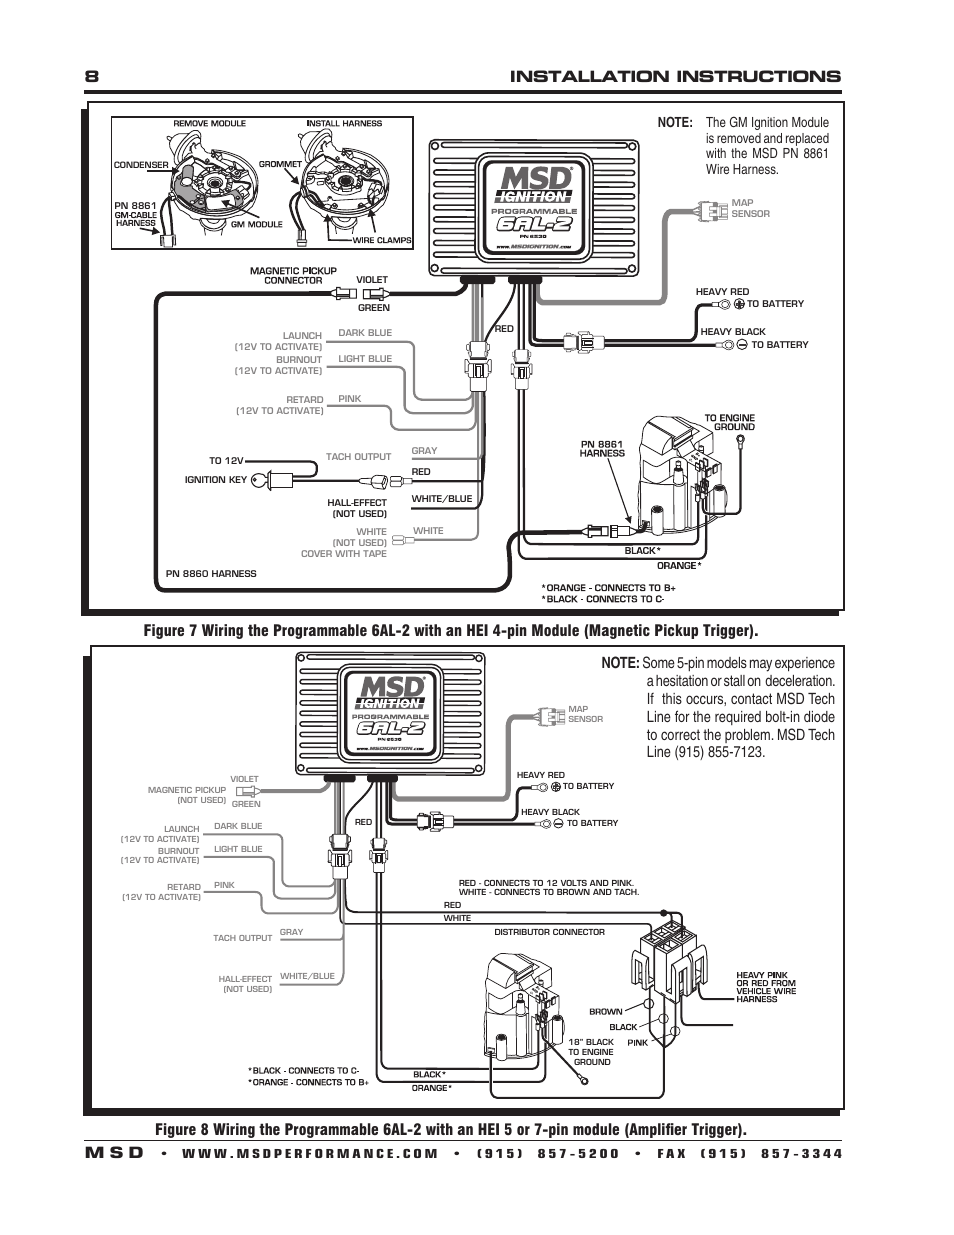 msd 8860 wiring harness diagram gm